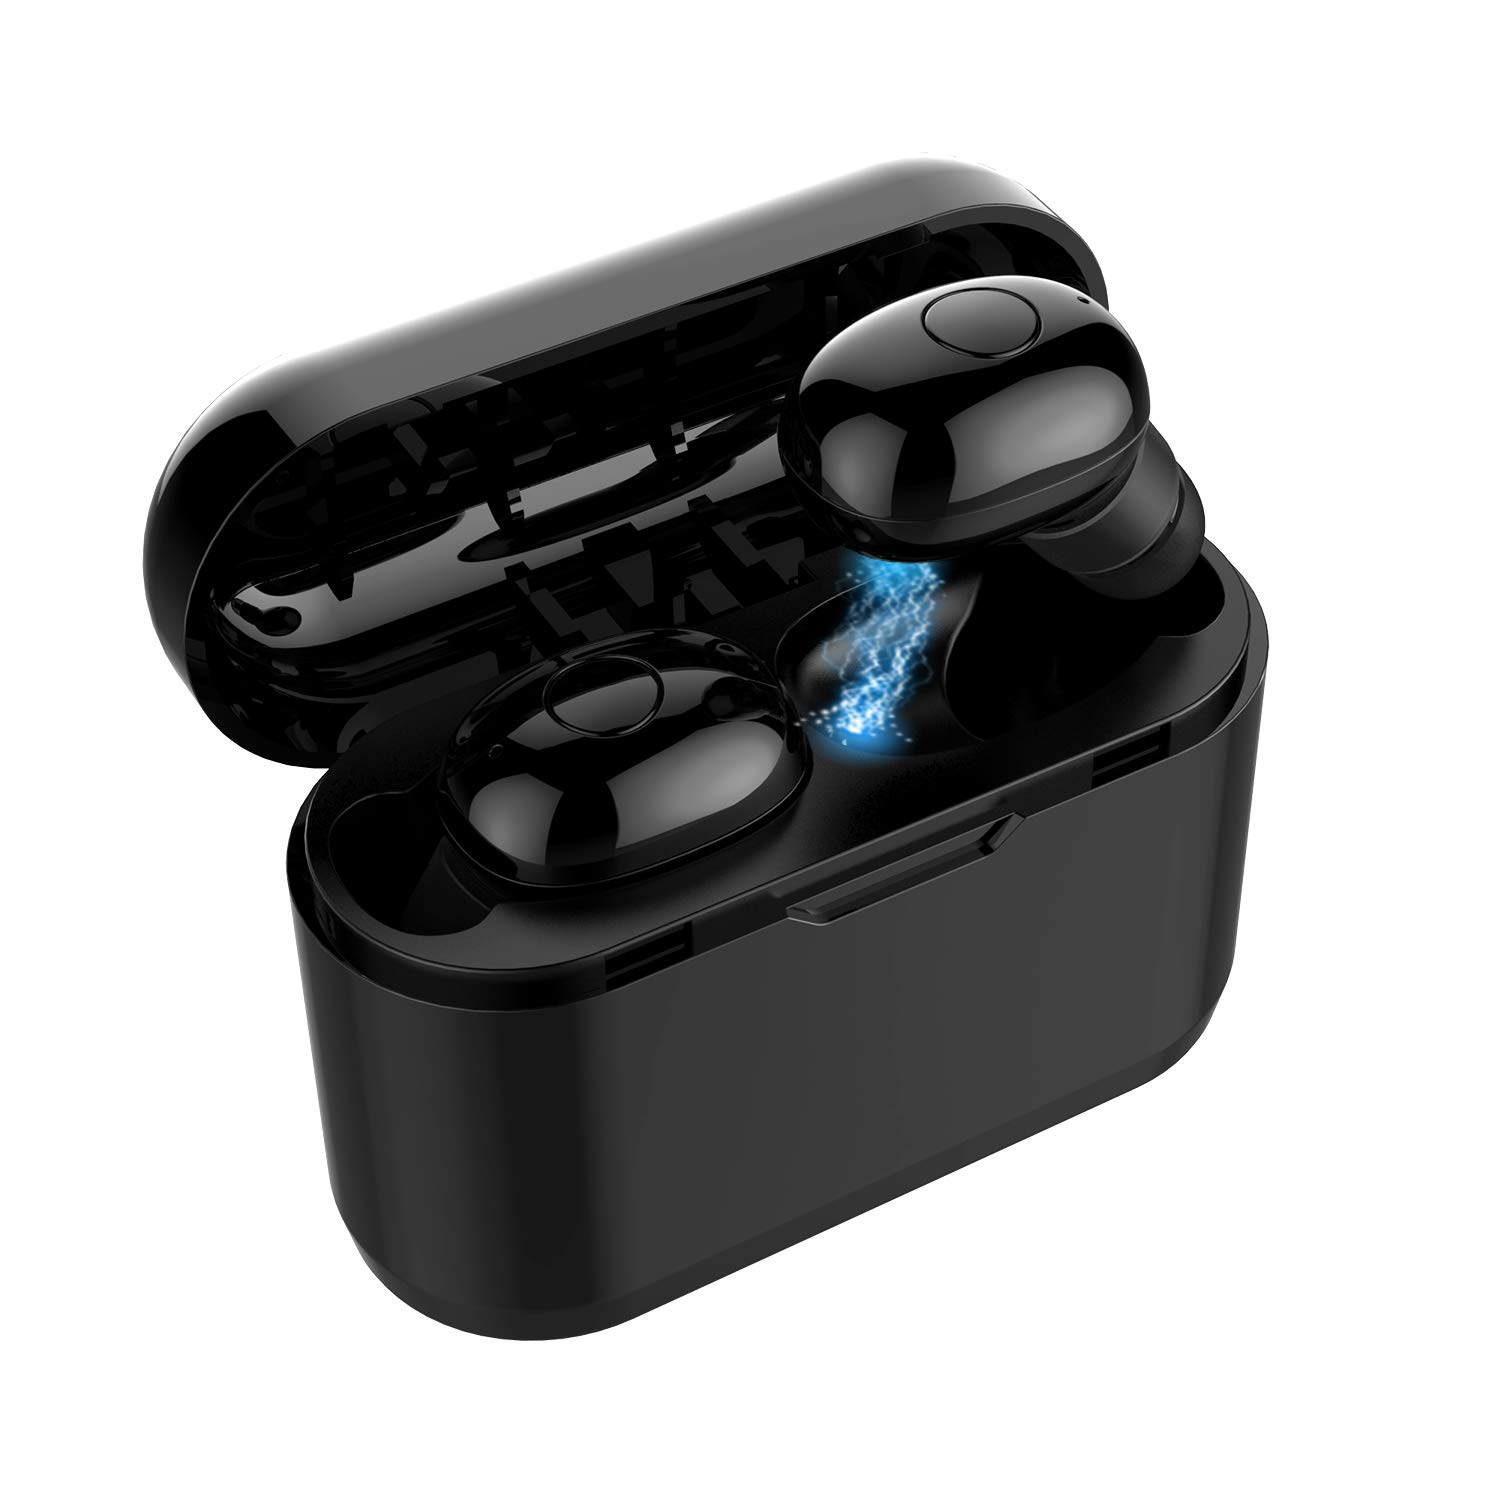 Wireless Bluetooth Earbuds, XHH Latest Bluetooth 5.0 Headphones with Loud Stereo Sound, Rich Bass, Mini in-Ear Binaural Call Wireless Earphones Headset with Built in Mic for iPhone, Samsung and More